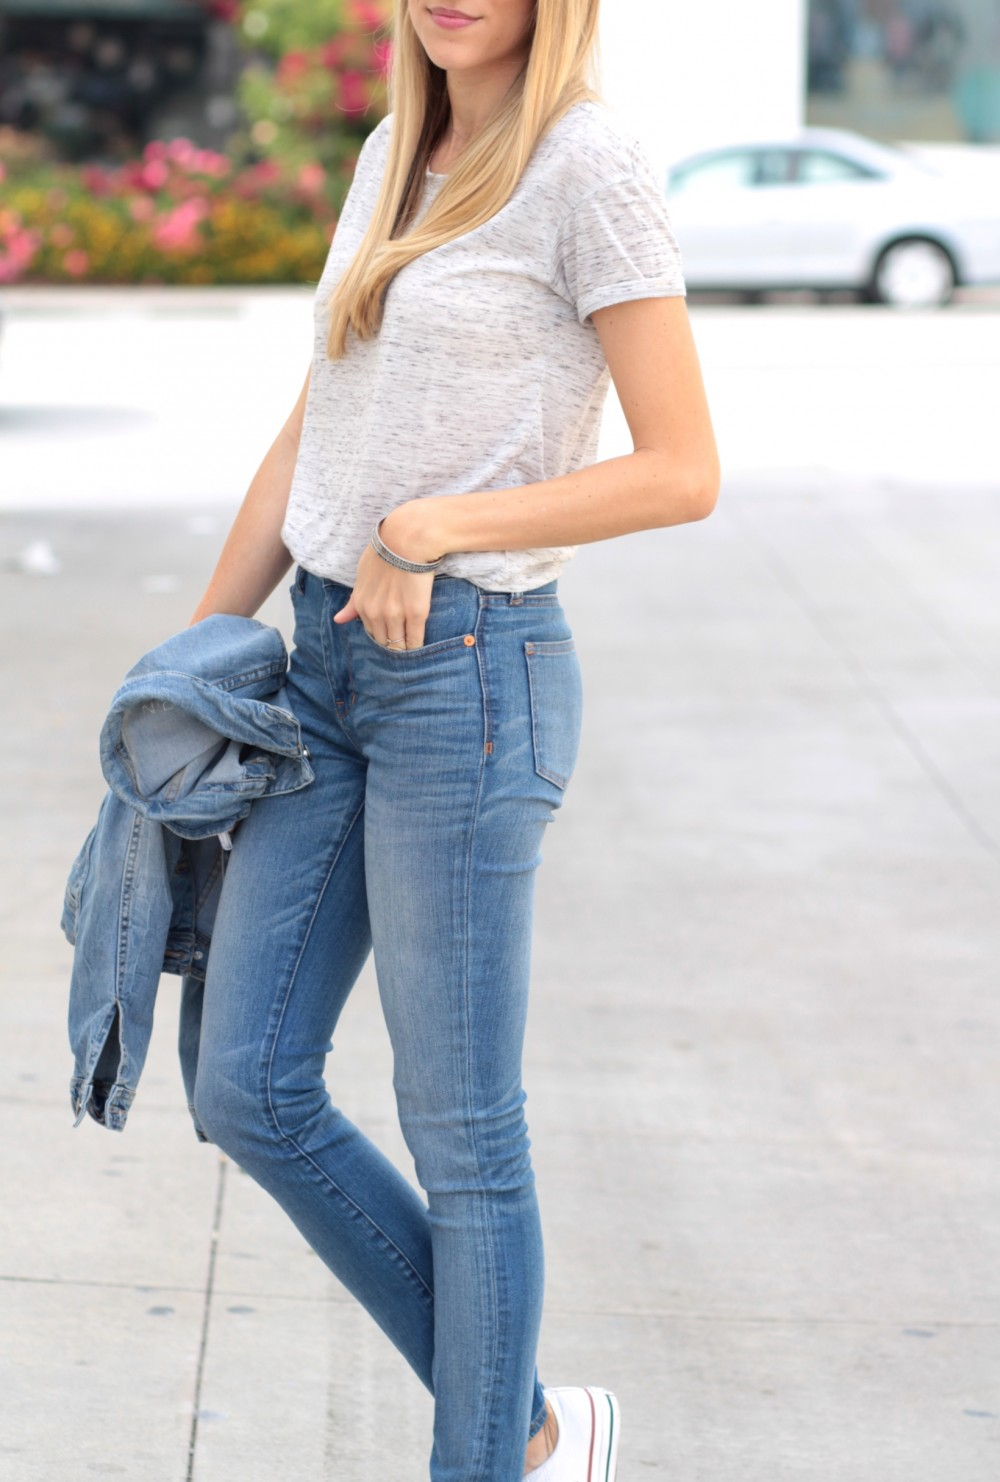 Bella Luxx tee + high waisted Madewell jeans   Adorned With Love